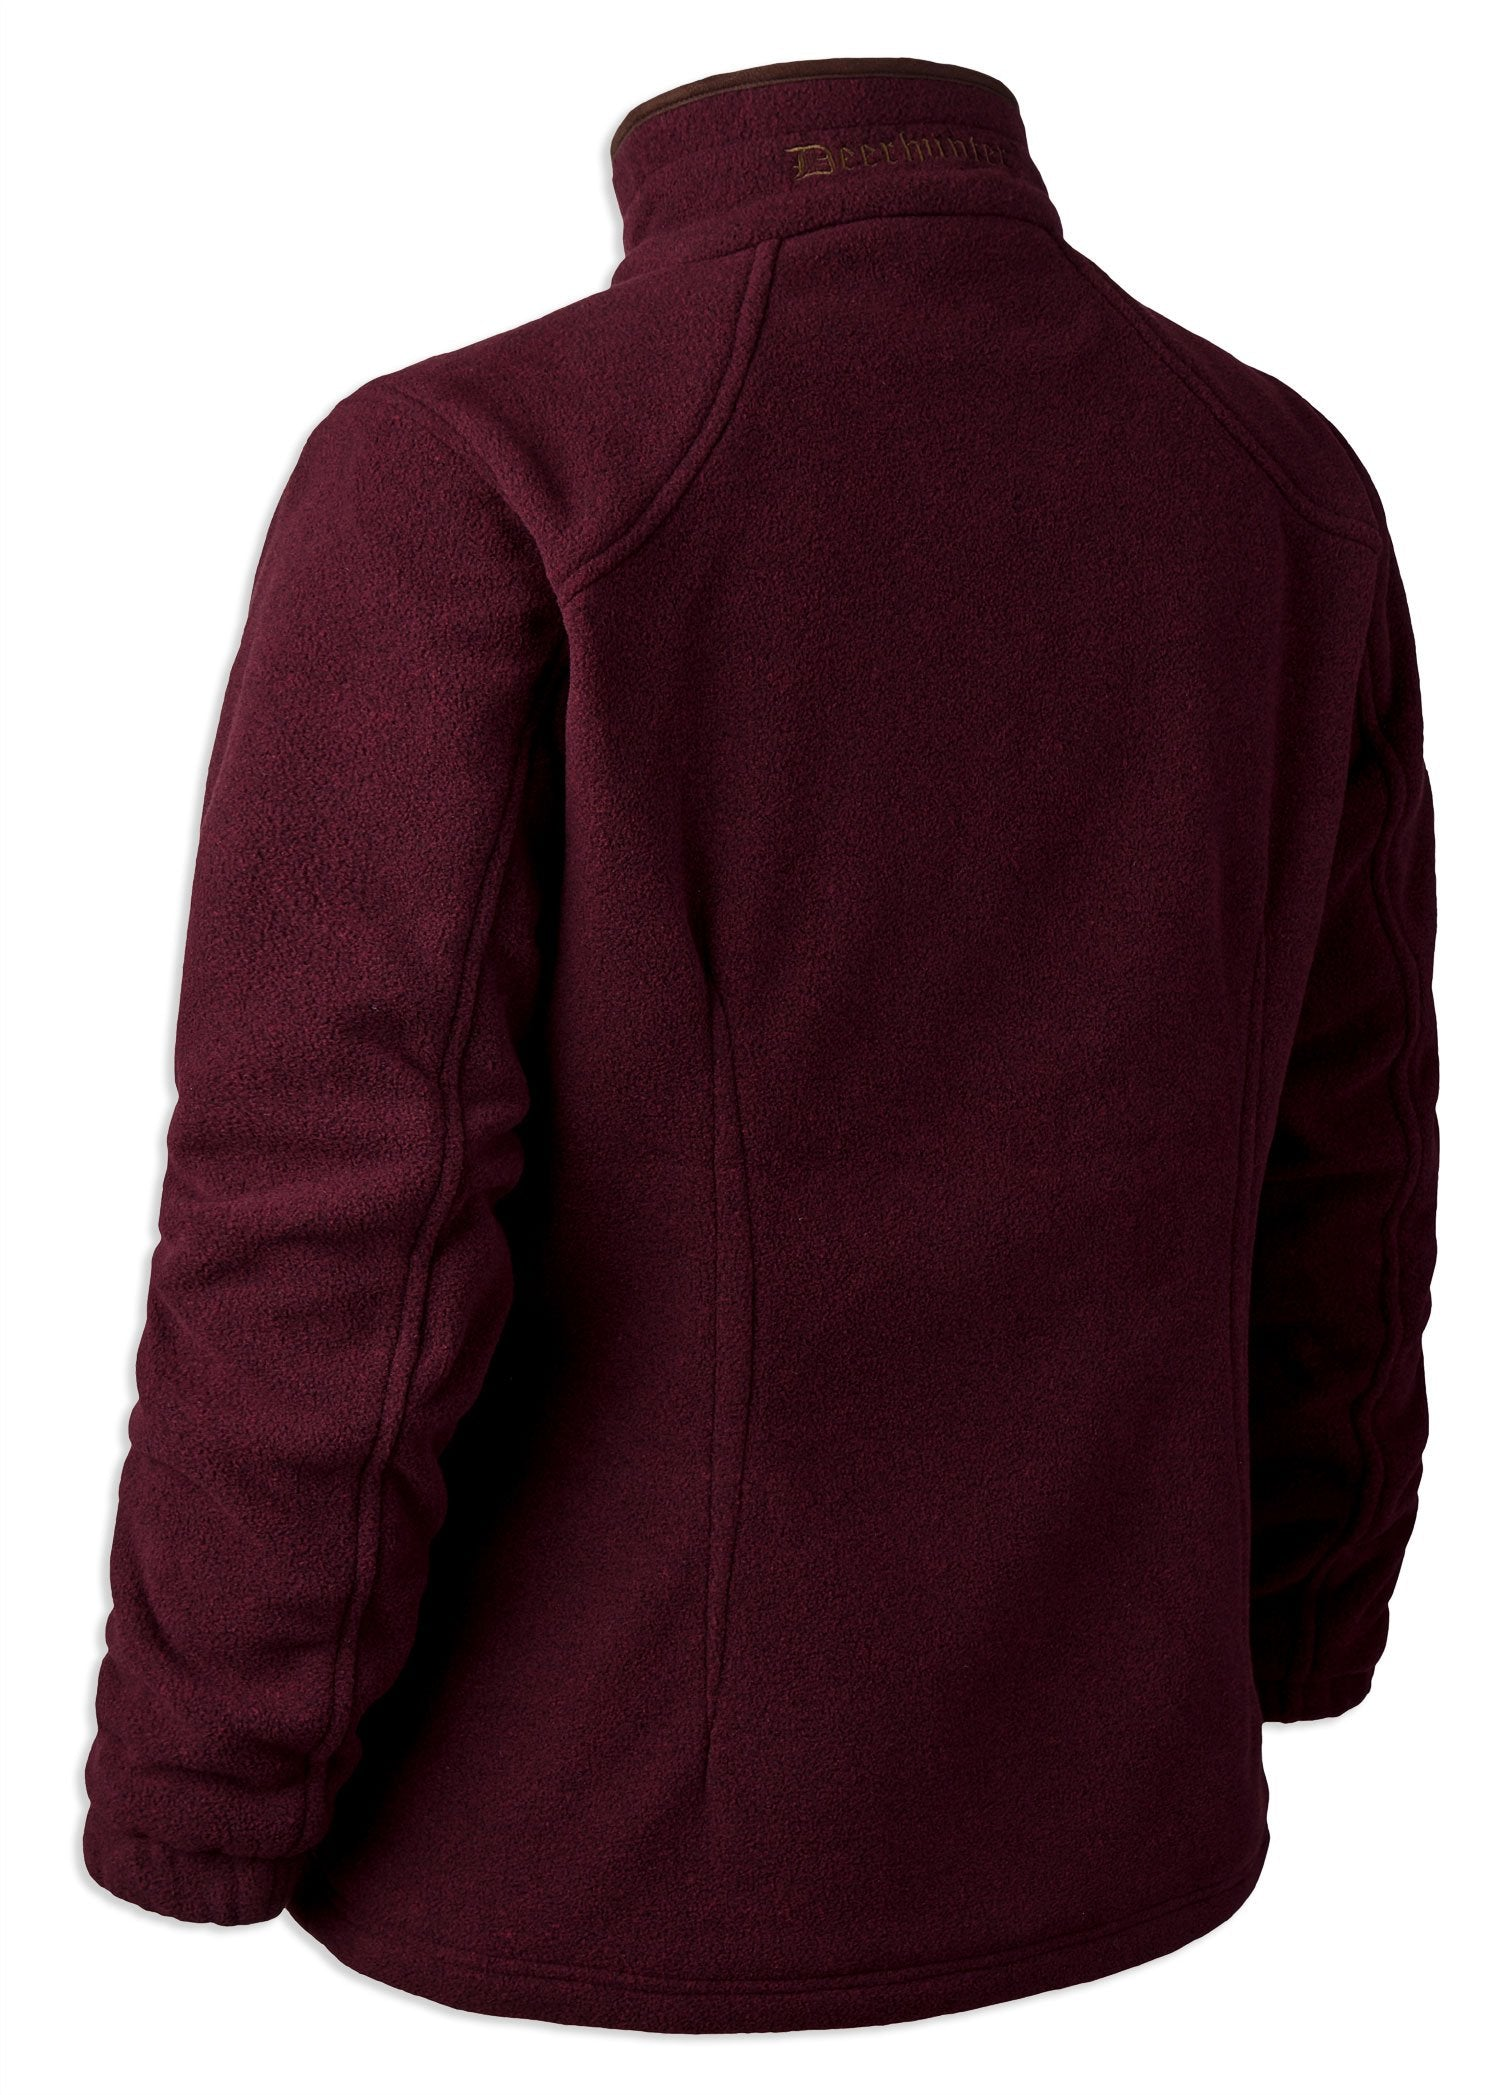 Back View  Burgundy Deerhunter Lady Josephine Fleece with Stormliner